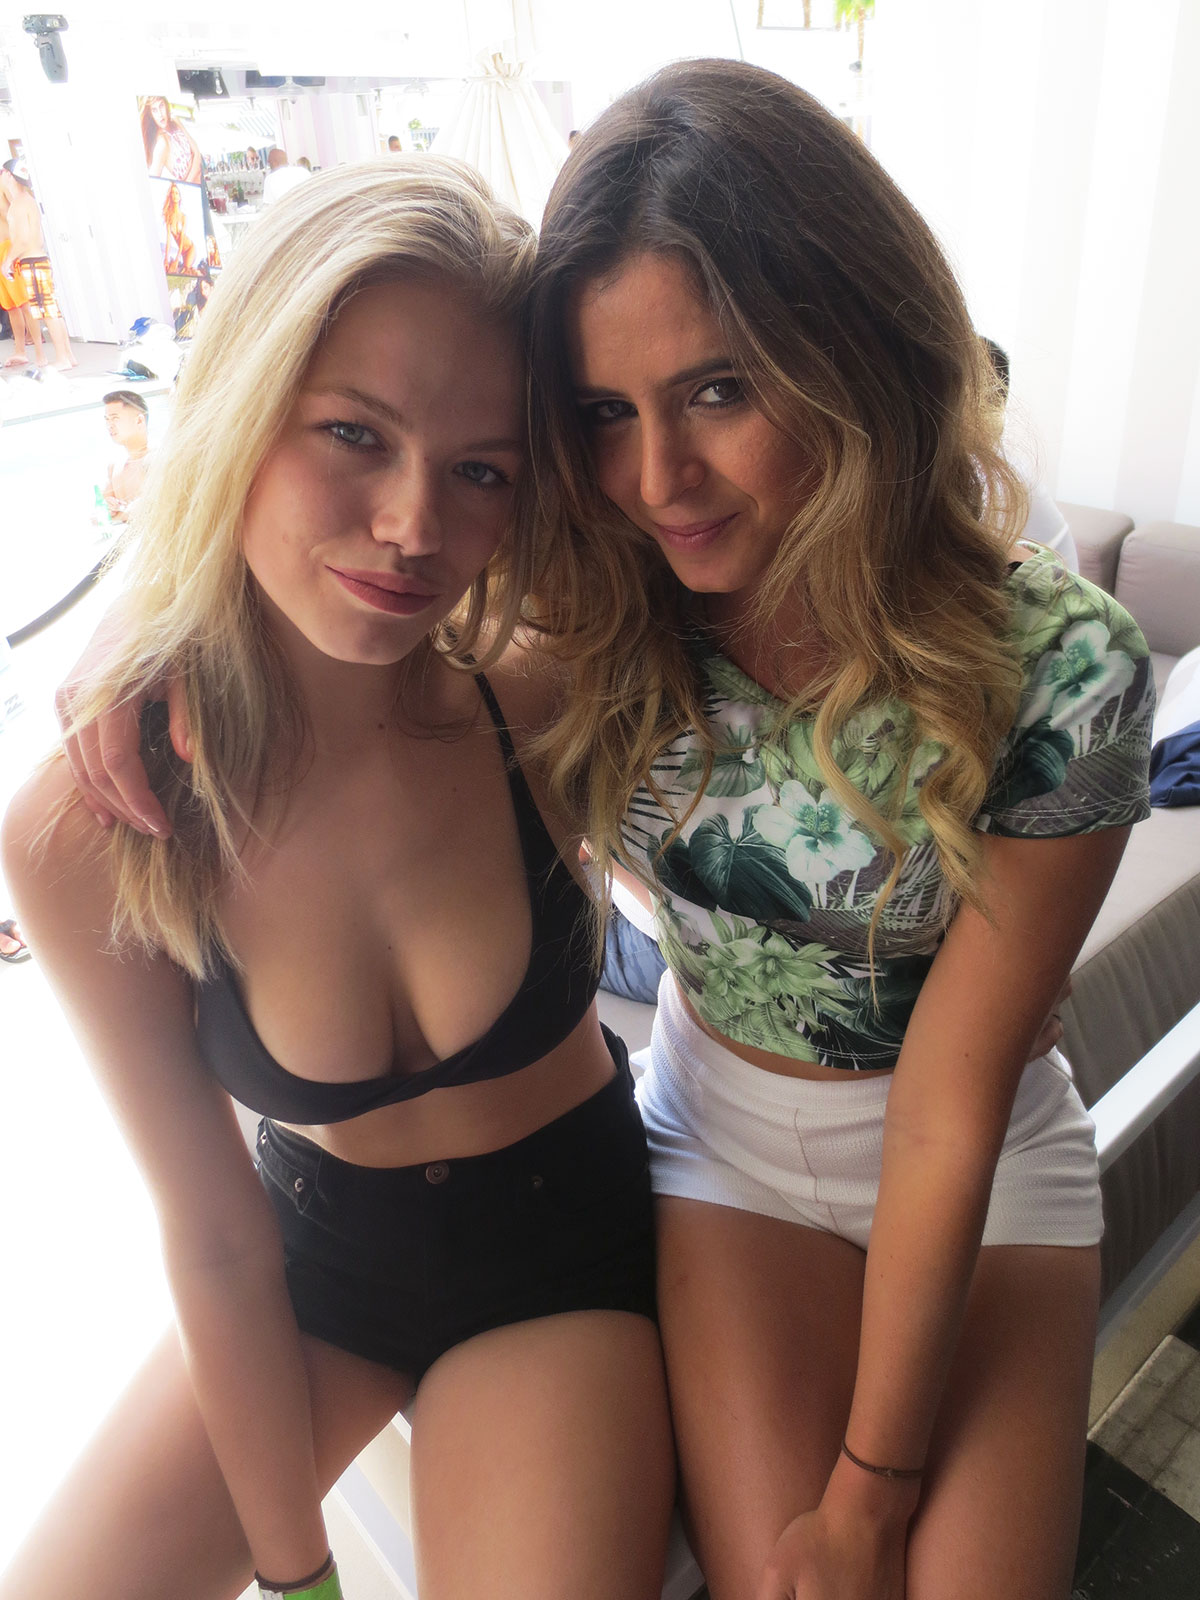 Hailey Clauson and Anastasia Ashley attend the Official Sports Illustrated Fight Weekend Party at the SLS Las Vegas Hotel & Casino.